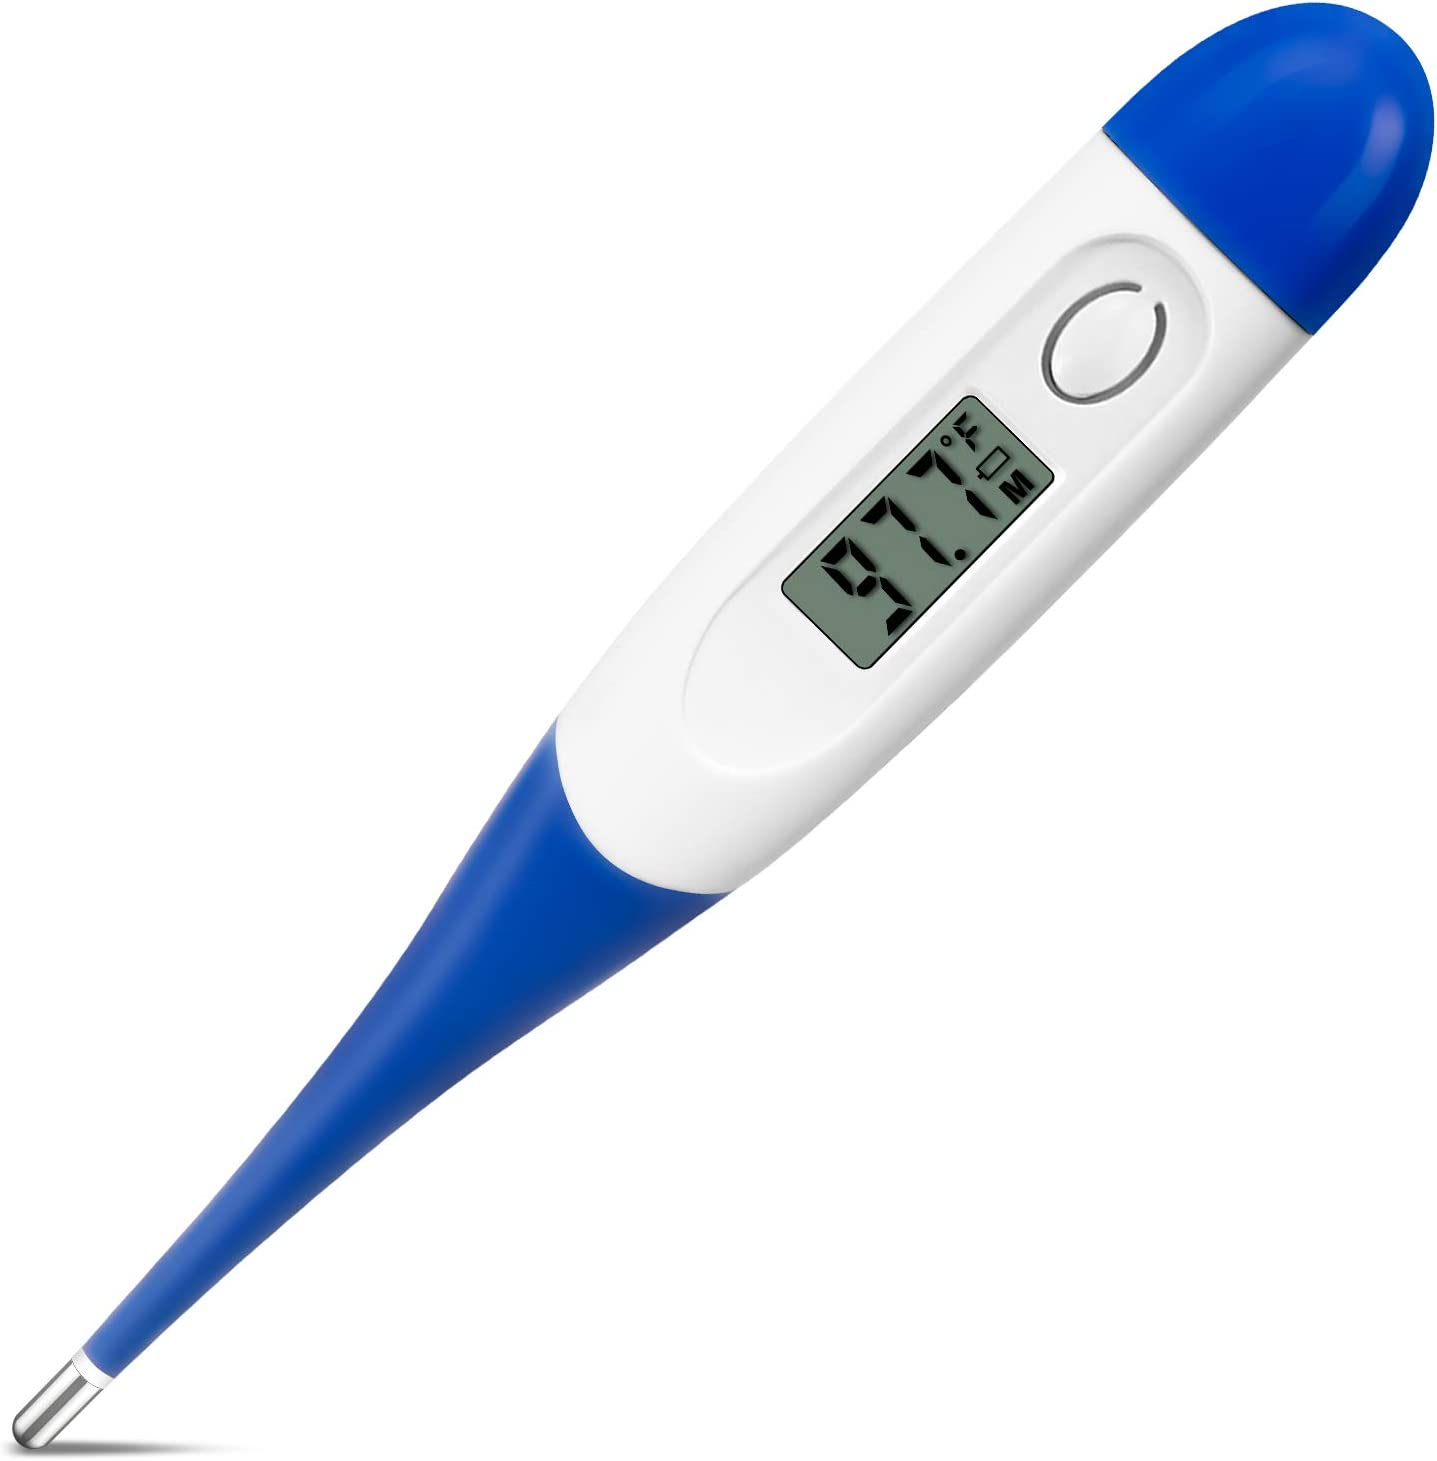 Digital Thermometer for Adults, Anzoee Oral Thermometer Accurate 60 Seconds Instant Reading Waterproof Mercury-Free Basal Thermometers for Body Underarm Rectal for Child Kids Baby Pets (in Fahrenheit)